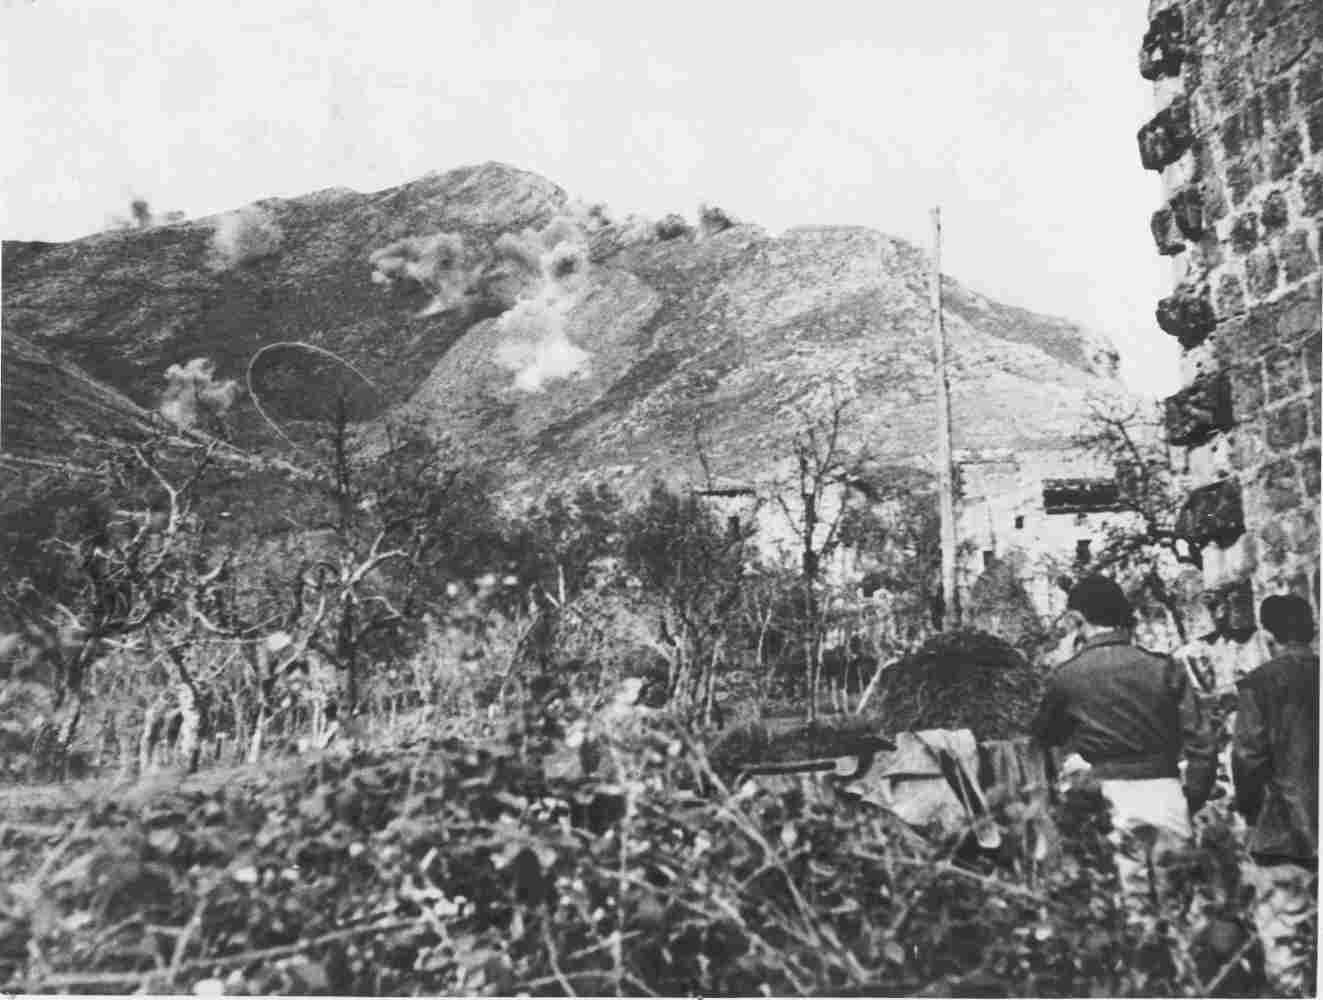 MT. CAMINO   GERMAN MORTARS